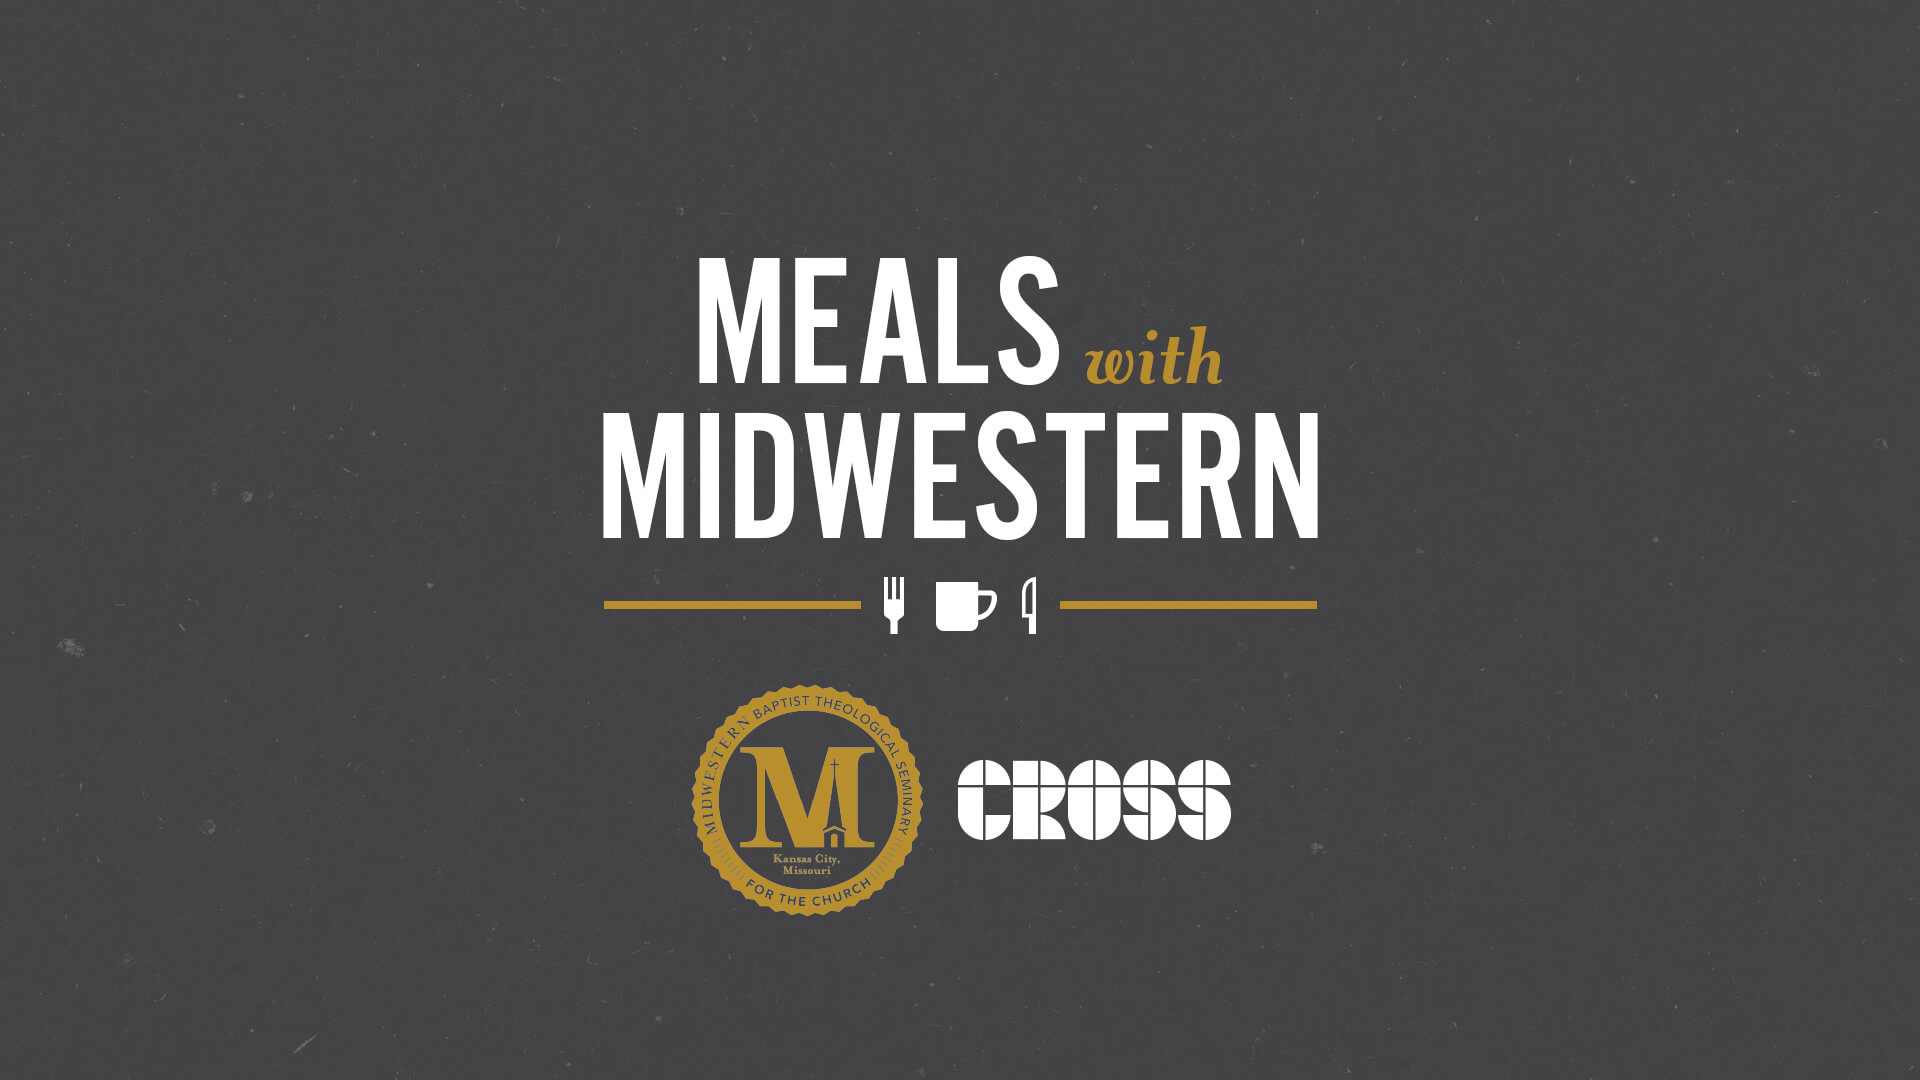 Meals with Midwestern at Cross Conference